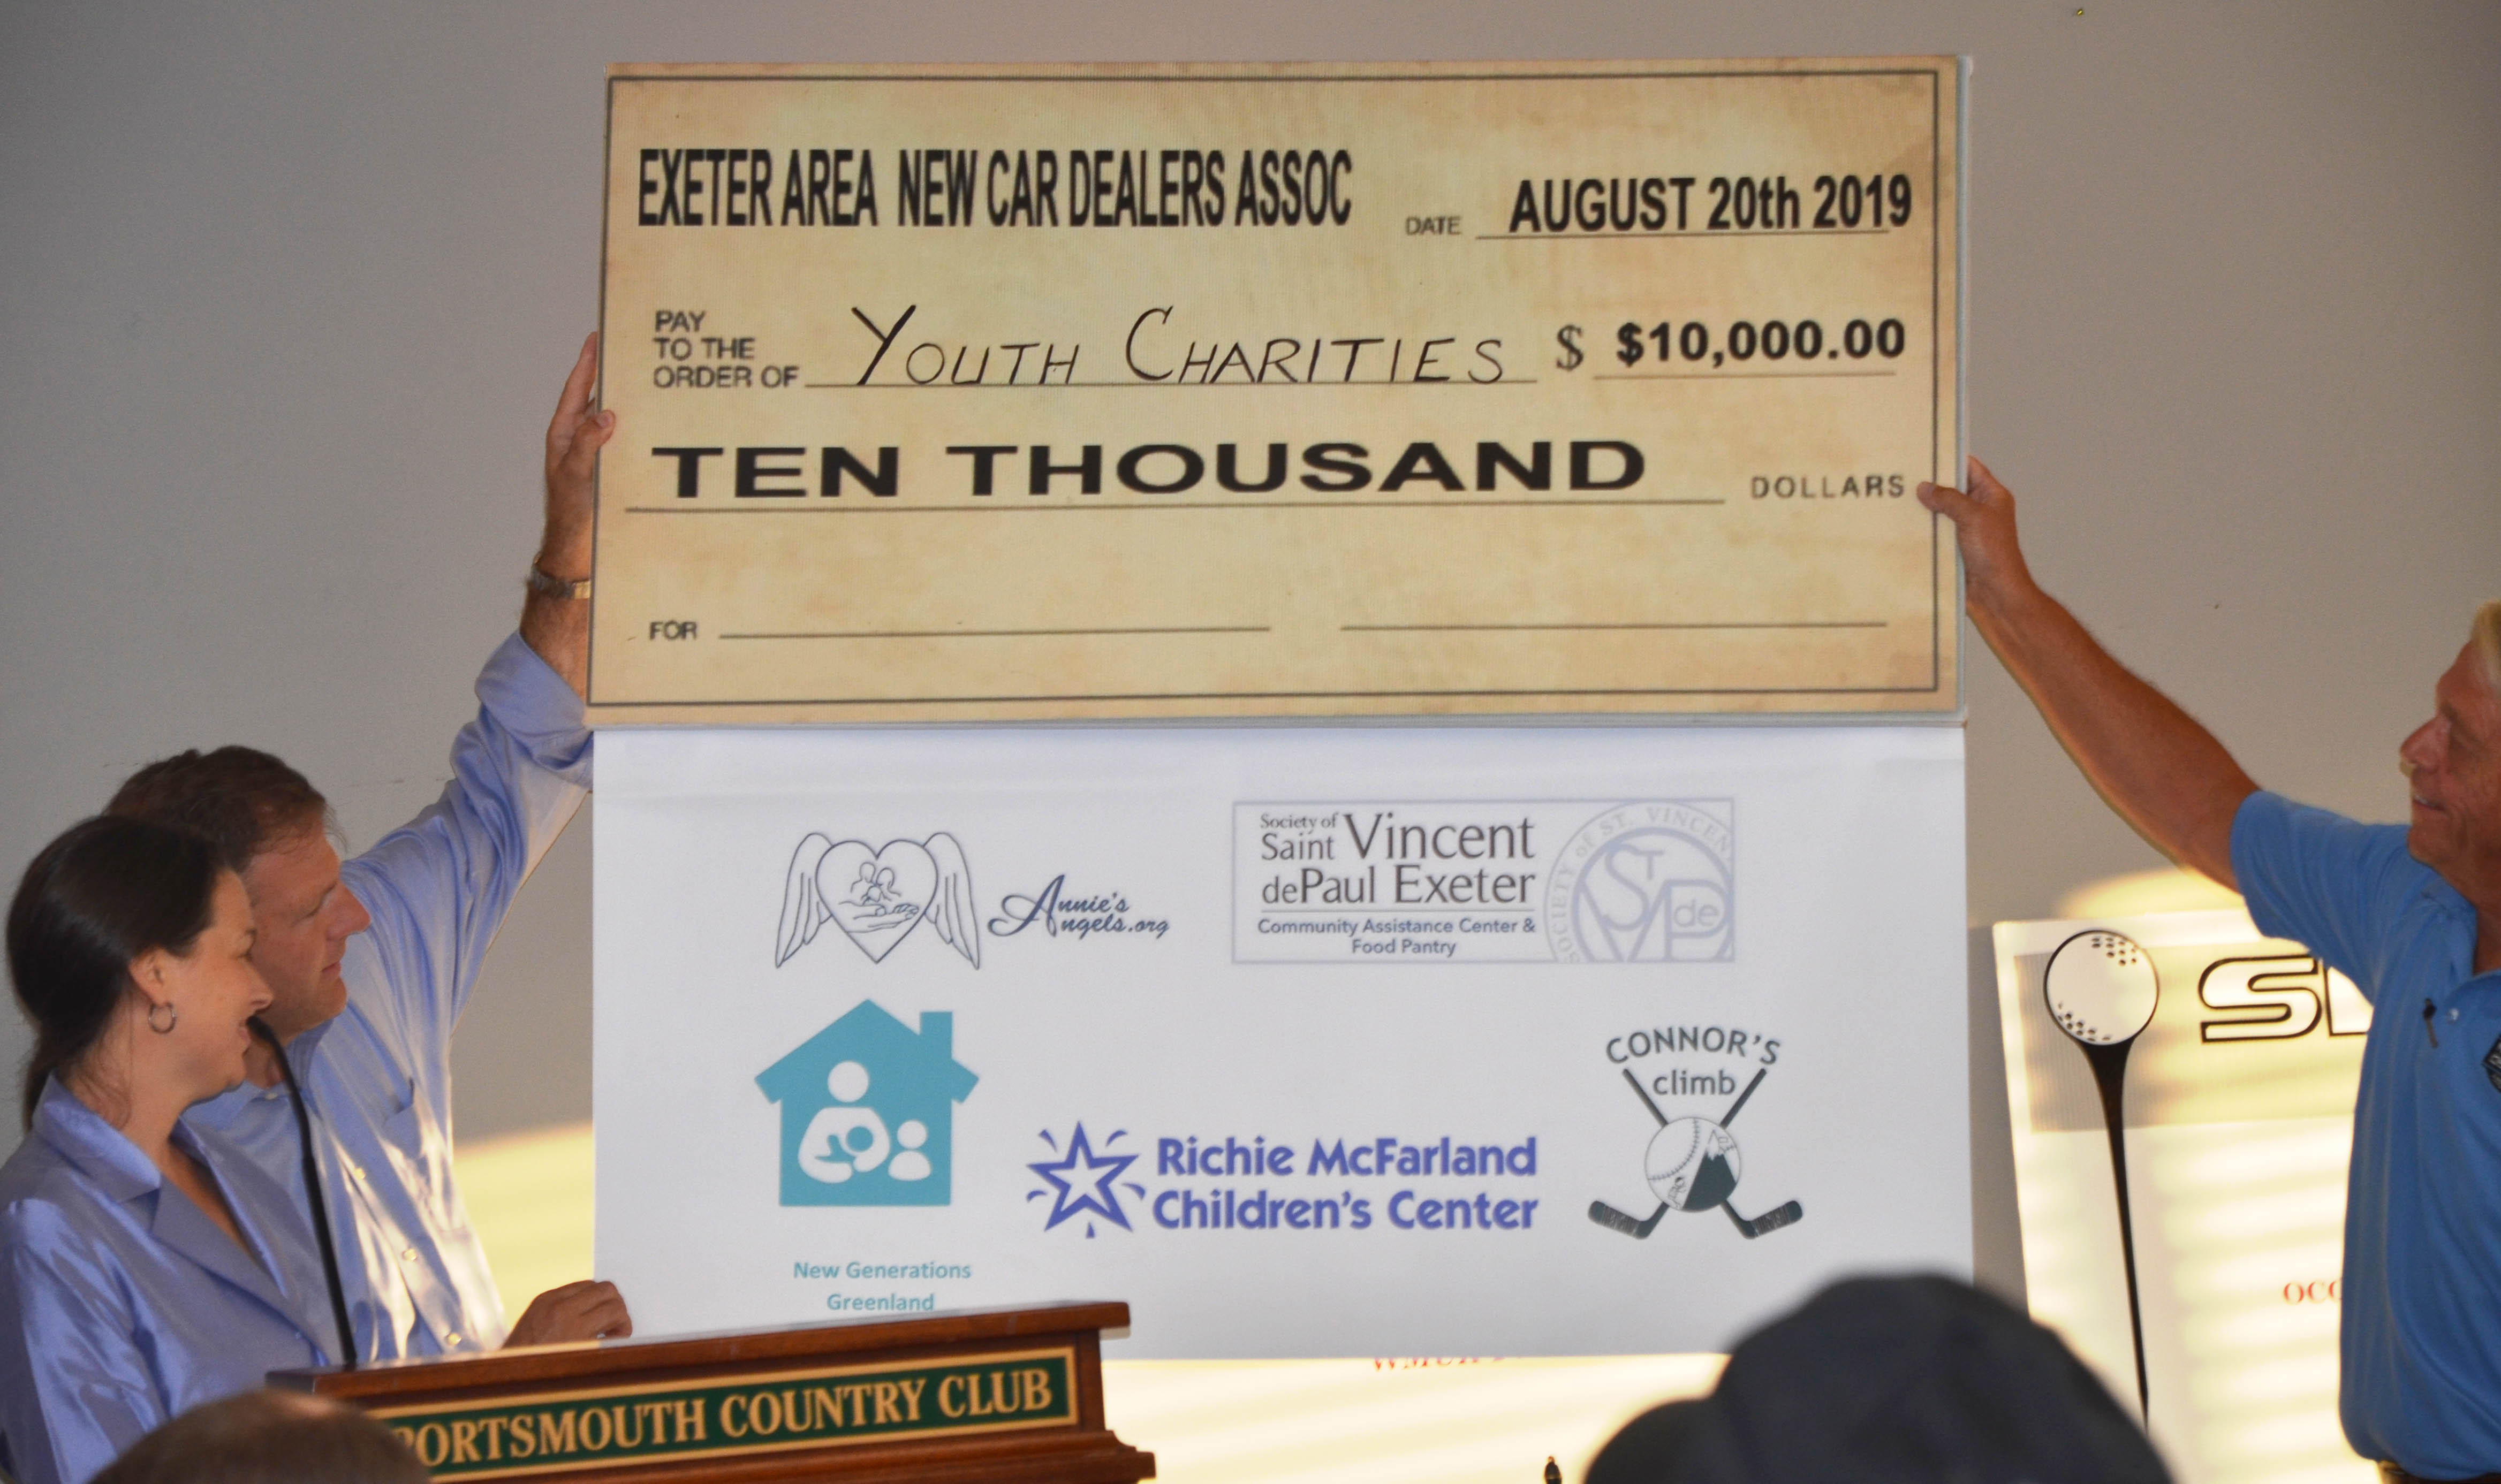 EANCDA Holds 27th Annual Golf Tournament